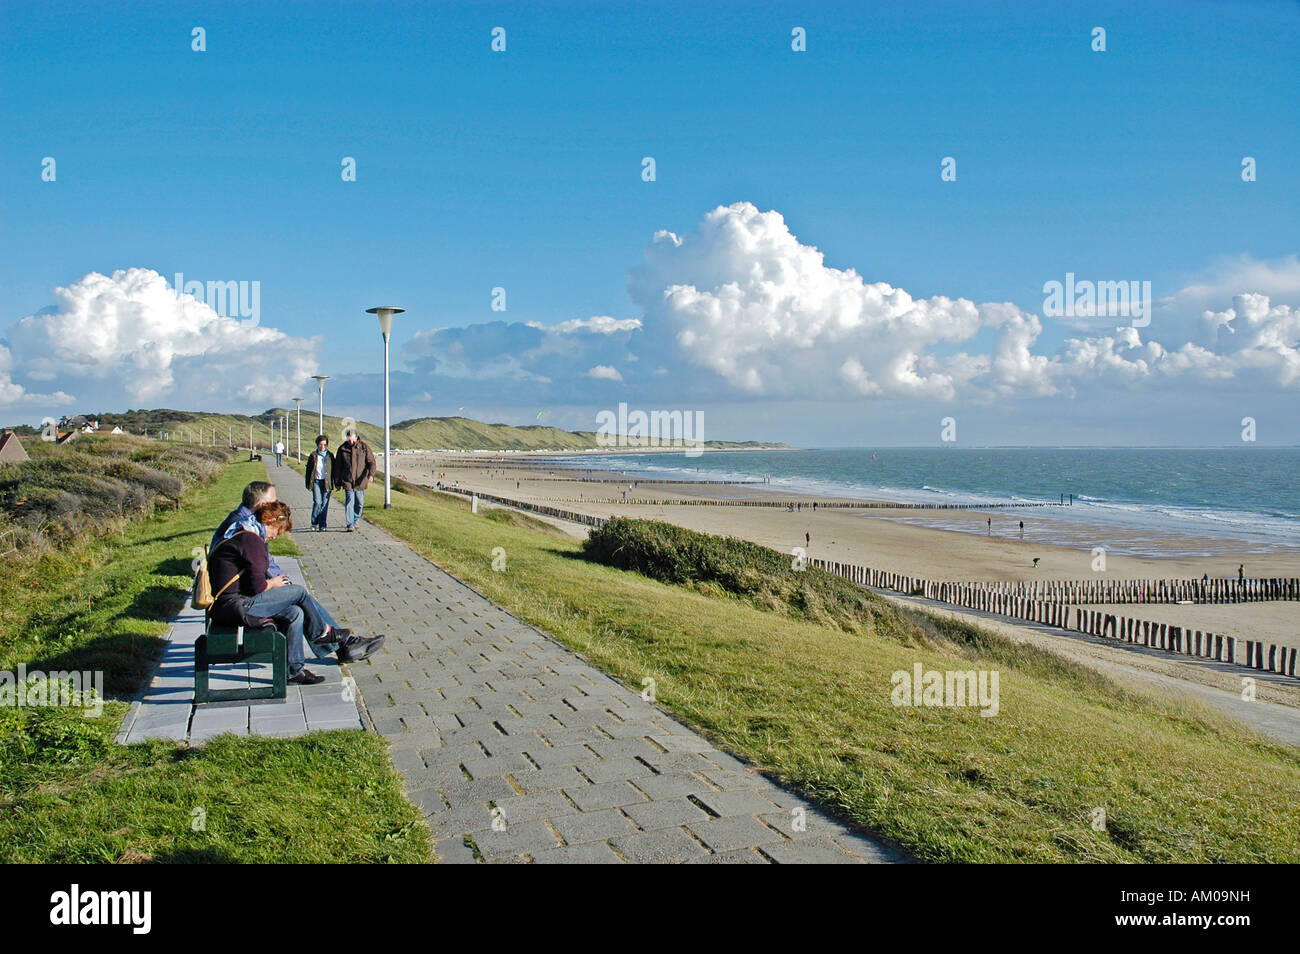 strand mit promenade zoutelande zeeland holland. Black Bedroom Furniture Sets. Home Design Ideas